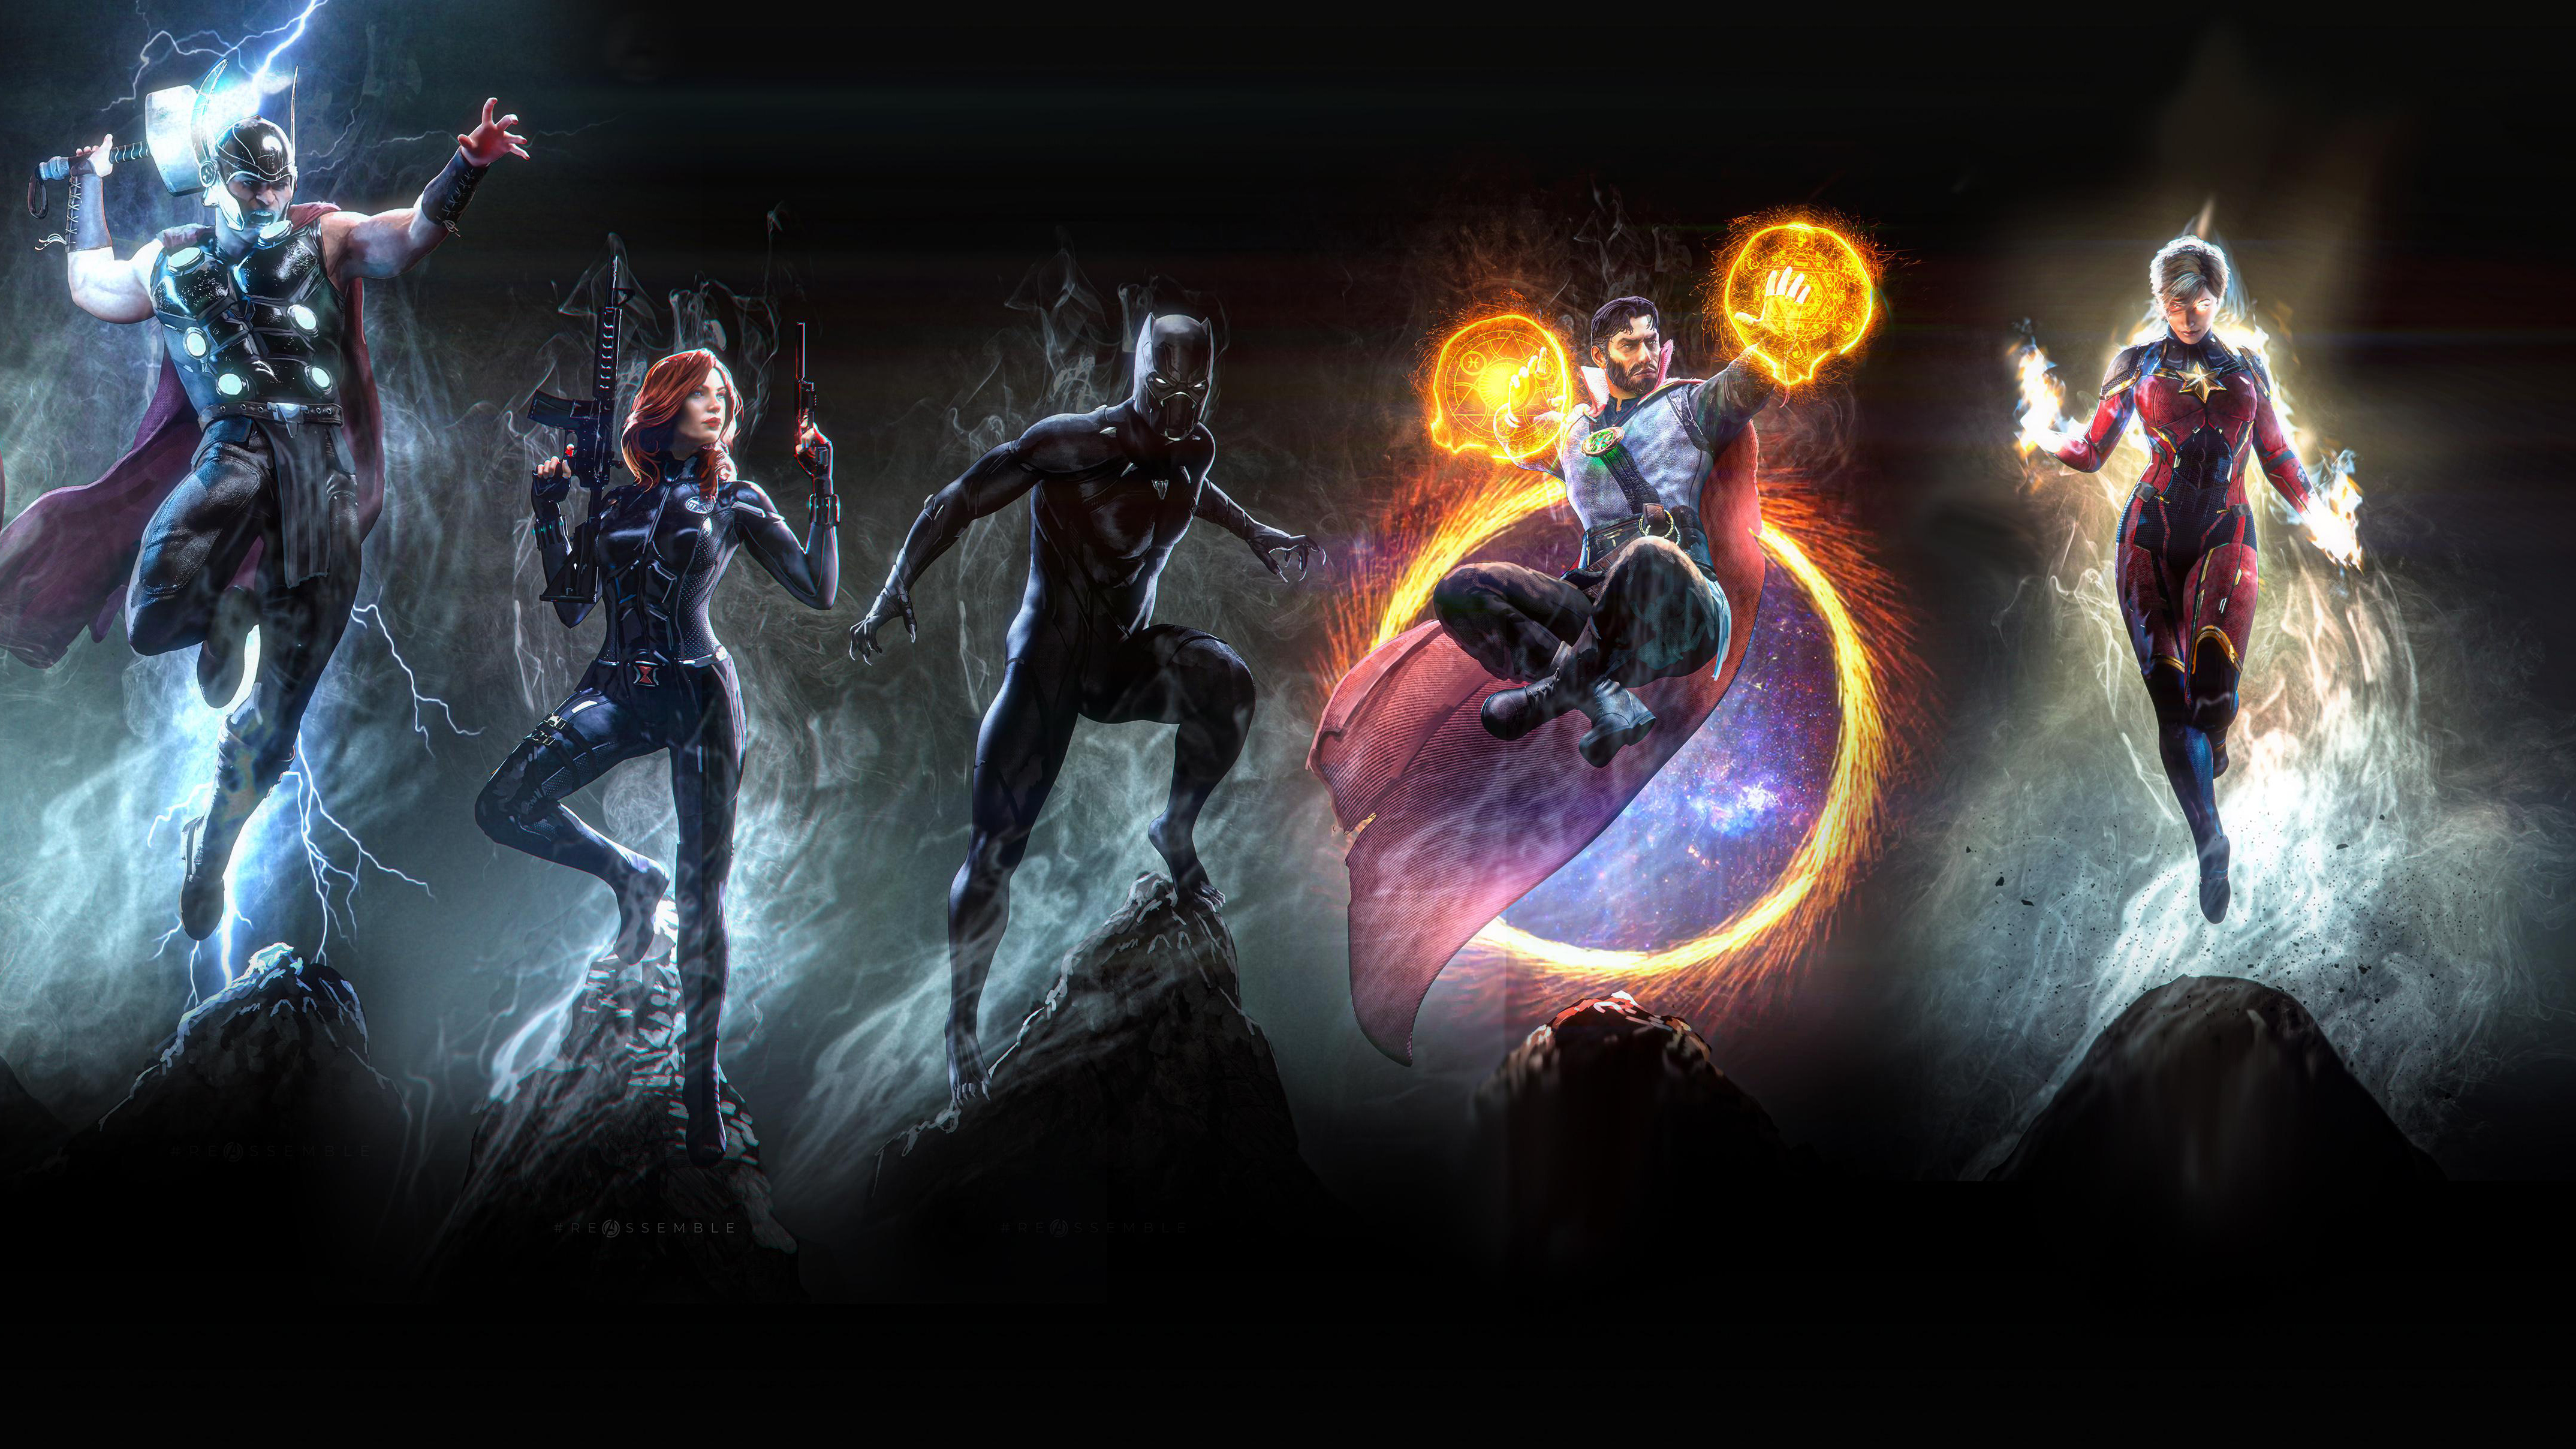 1920x1080 marvel heroes 4k art laptop full hd 1080p hd 4k wallpapers images backgrounds - Marvel hd wallpapers 4k ...